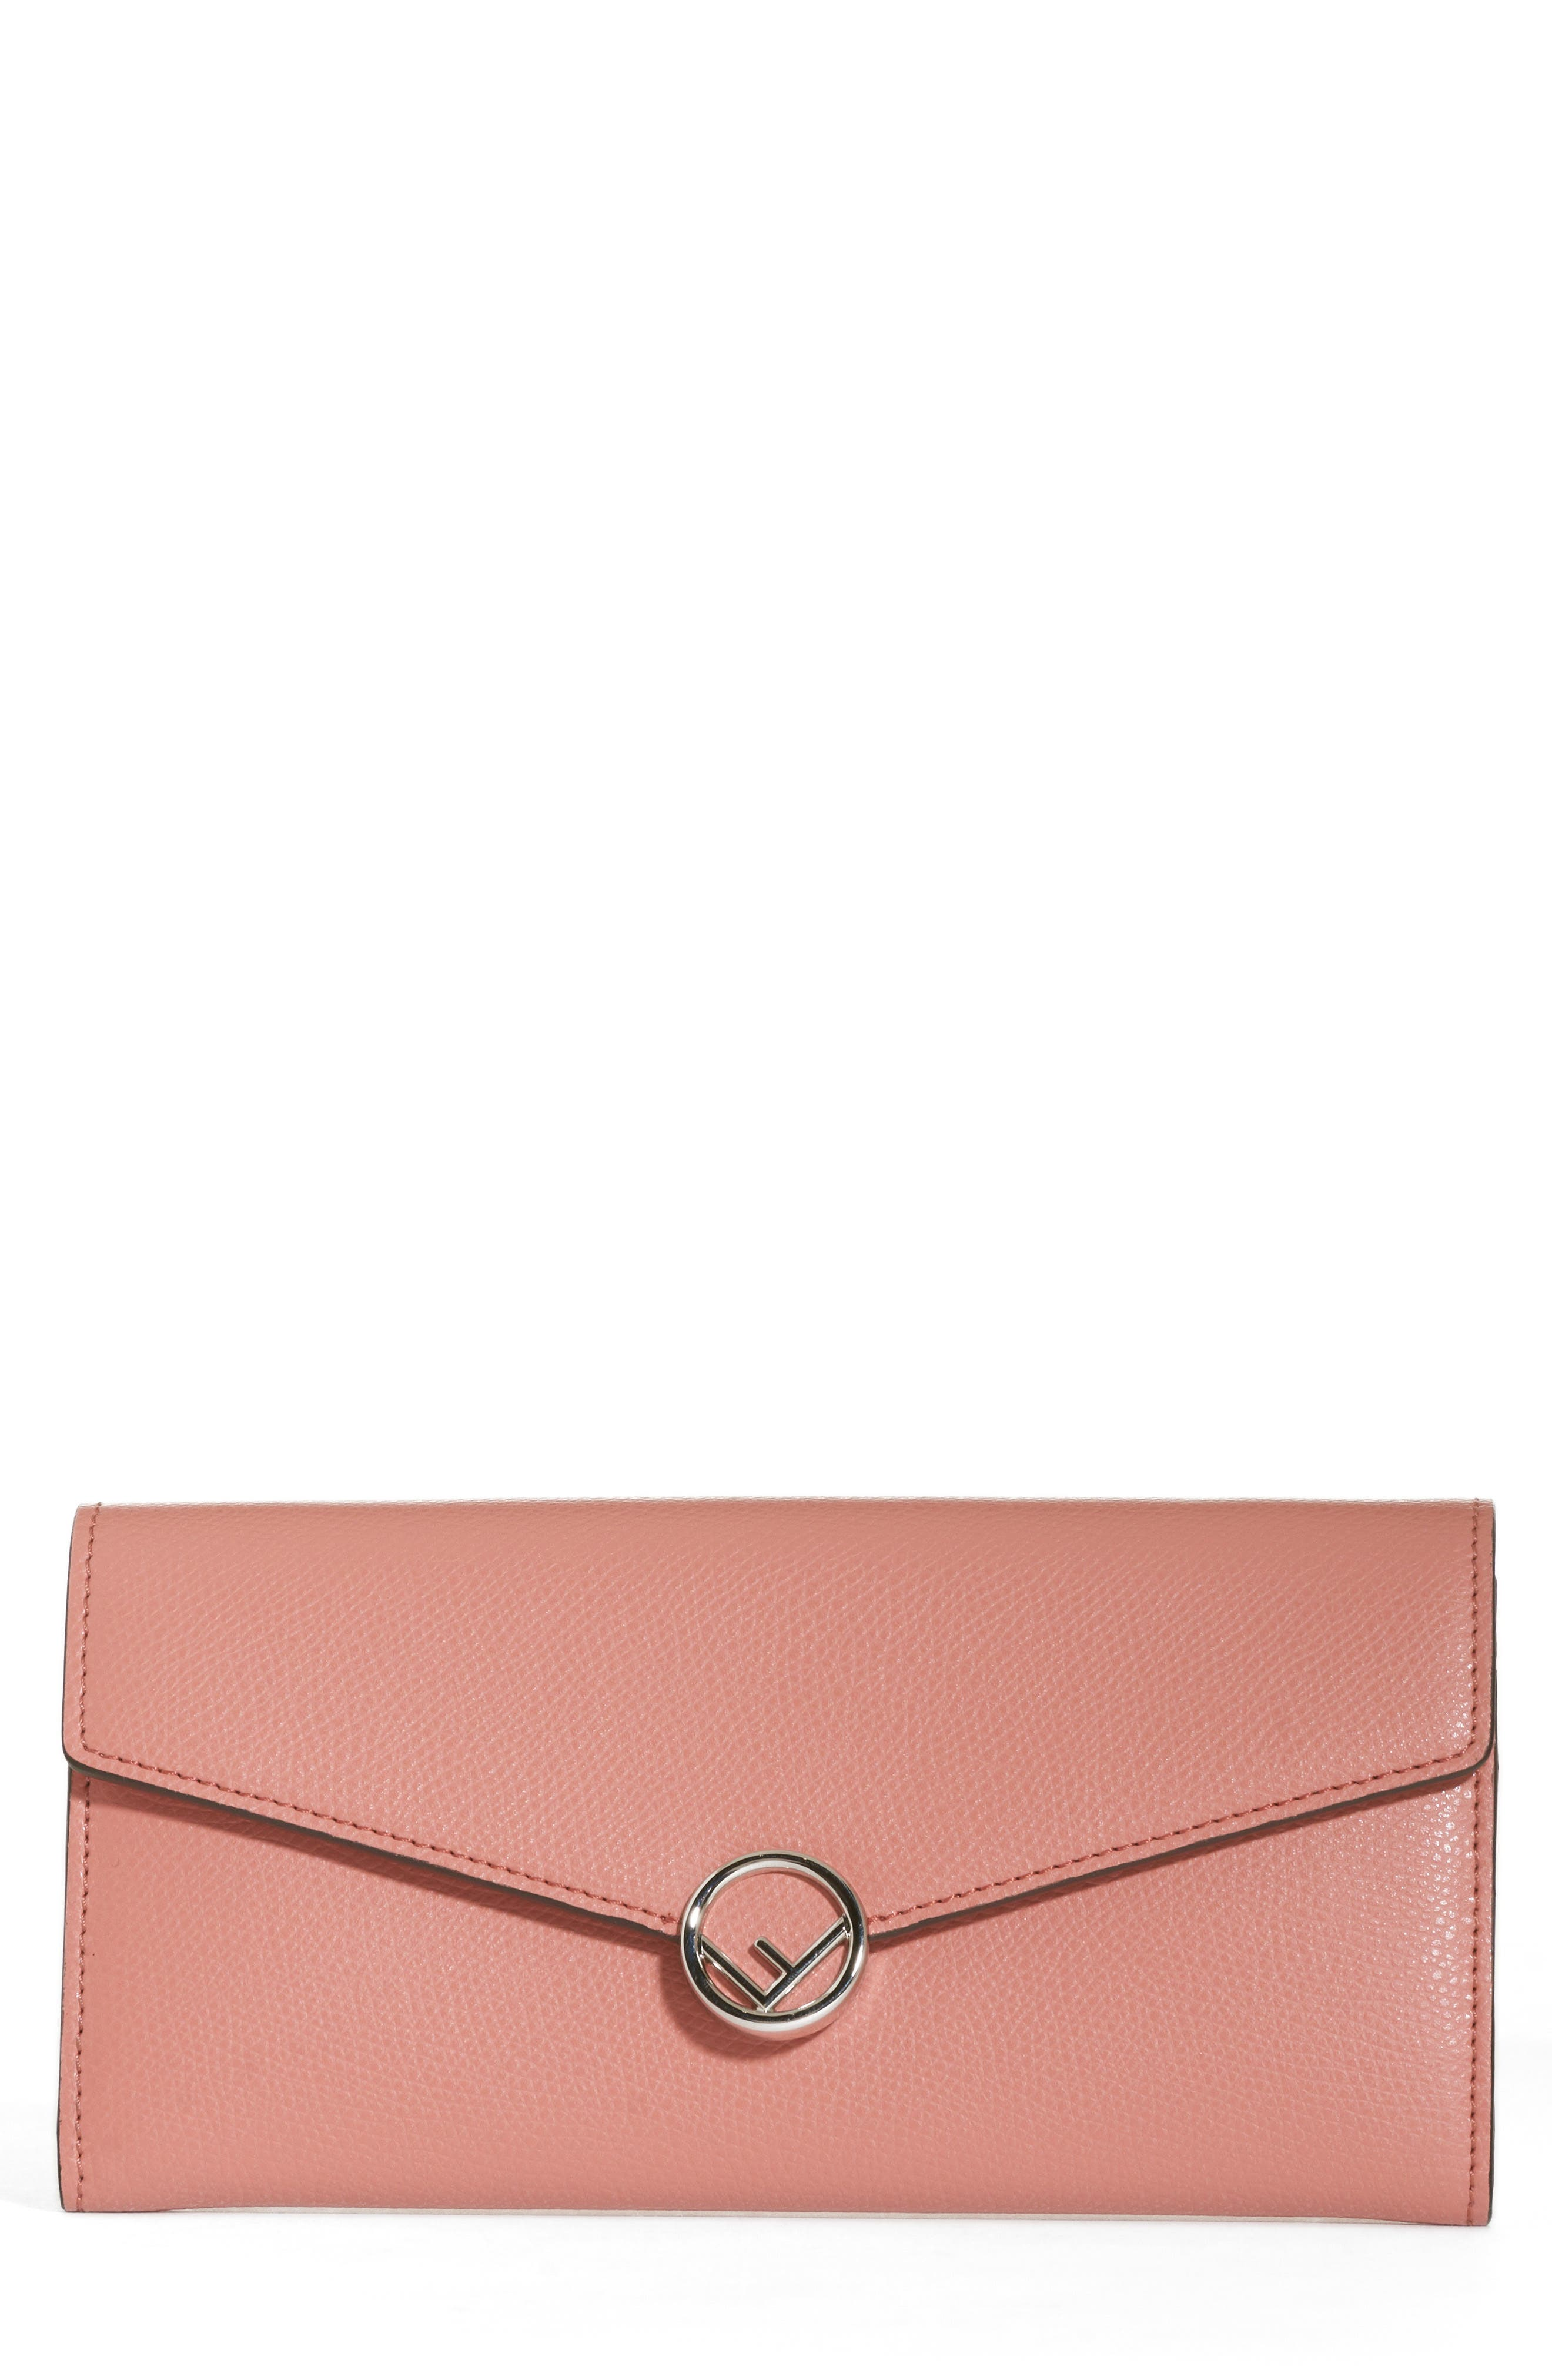 Logo Calfskin Leather Continental Wallet on a Chain,                             Main thumbnail 1, color,                             MACARON/ PALLADIO